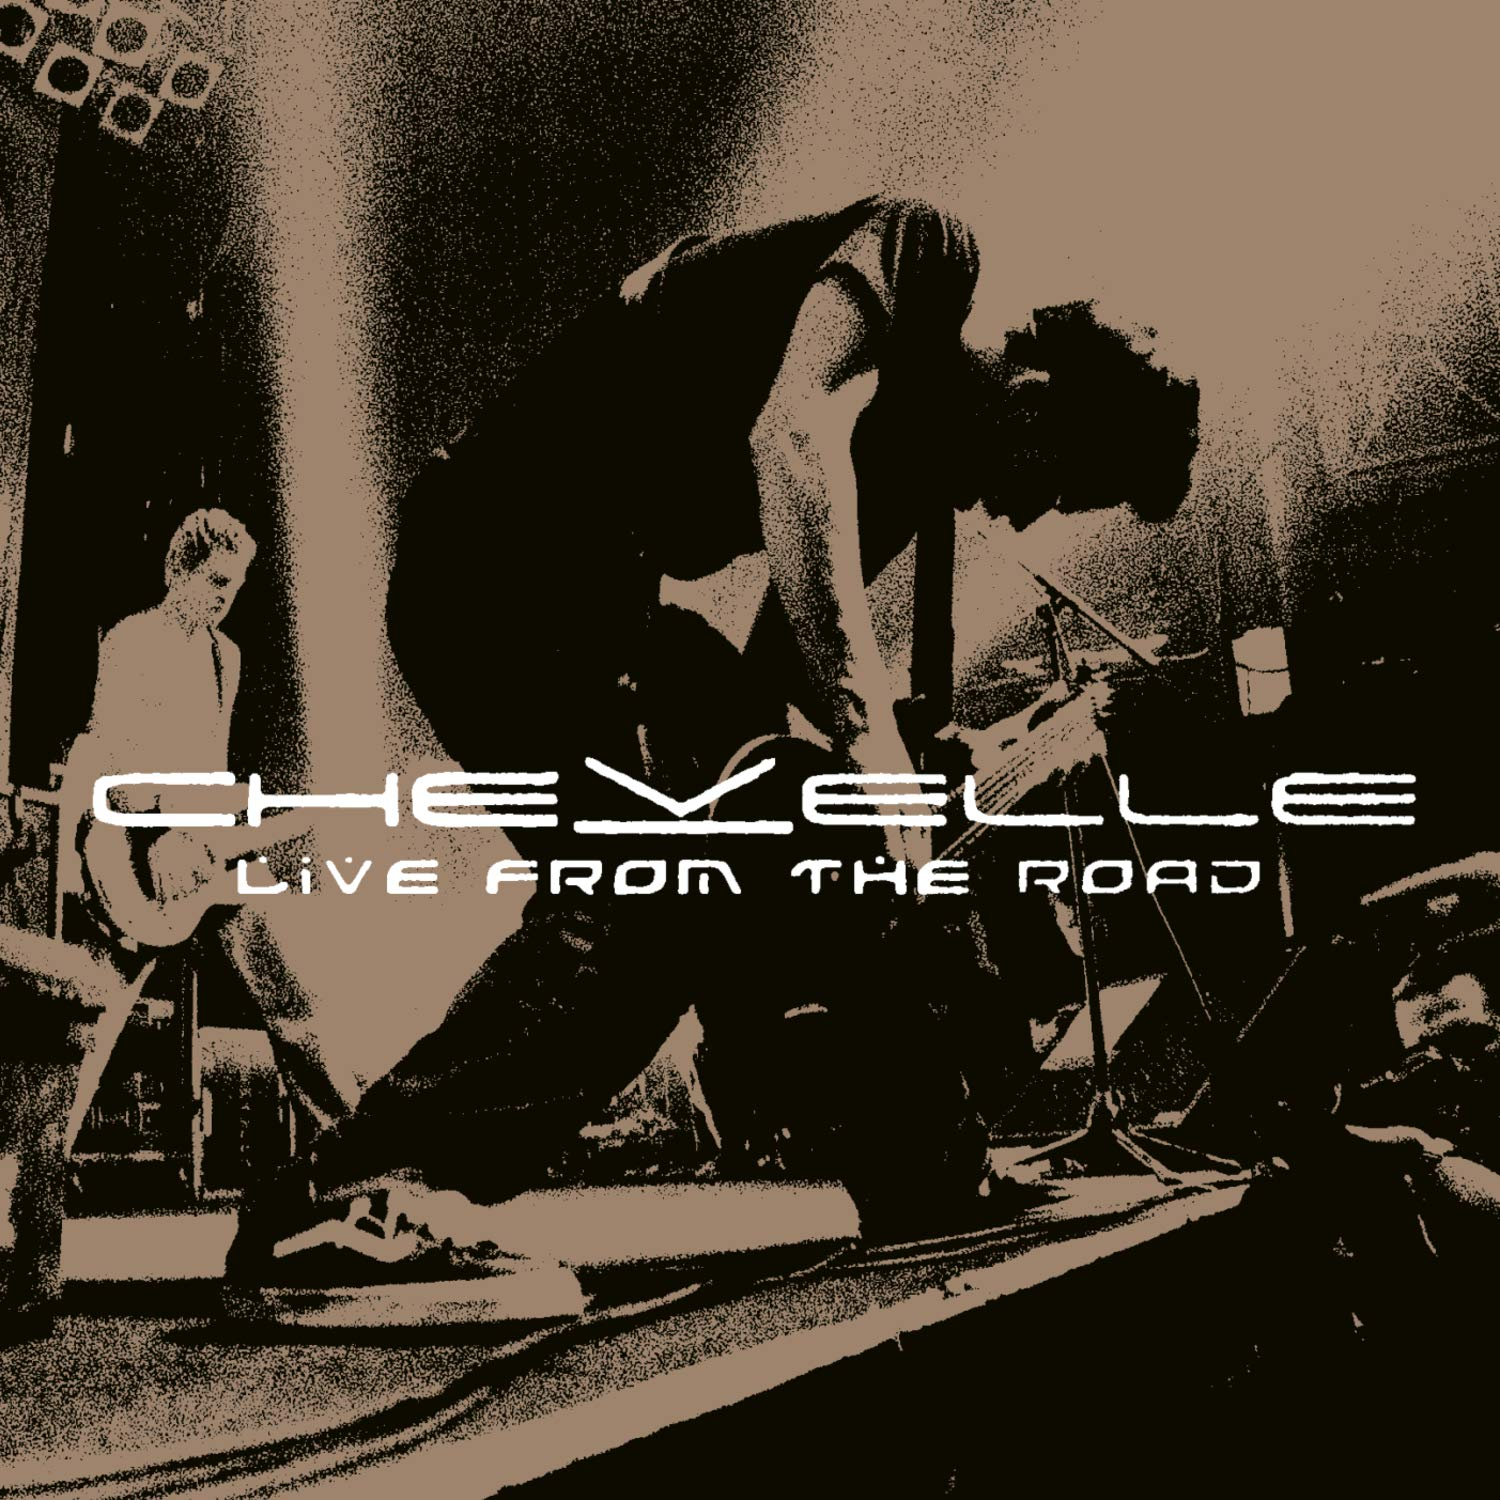 Chevelle – Live from the Road